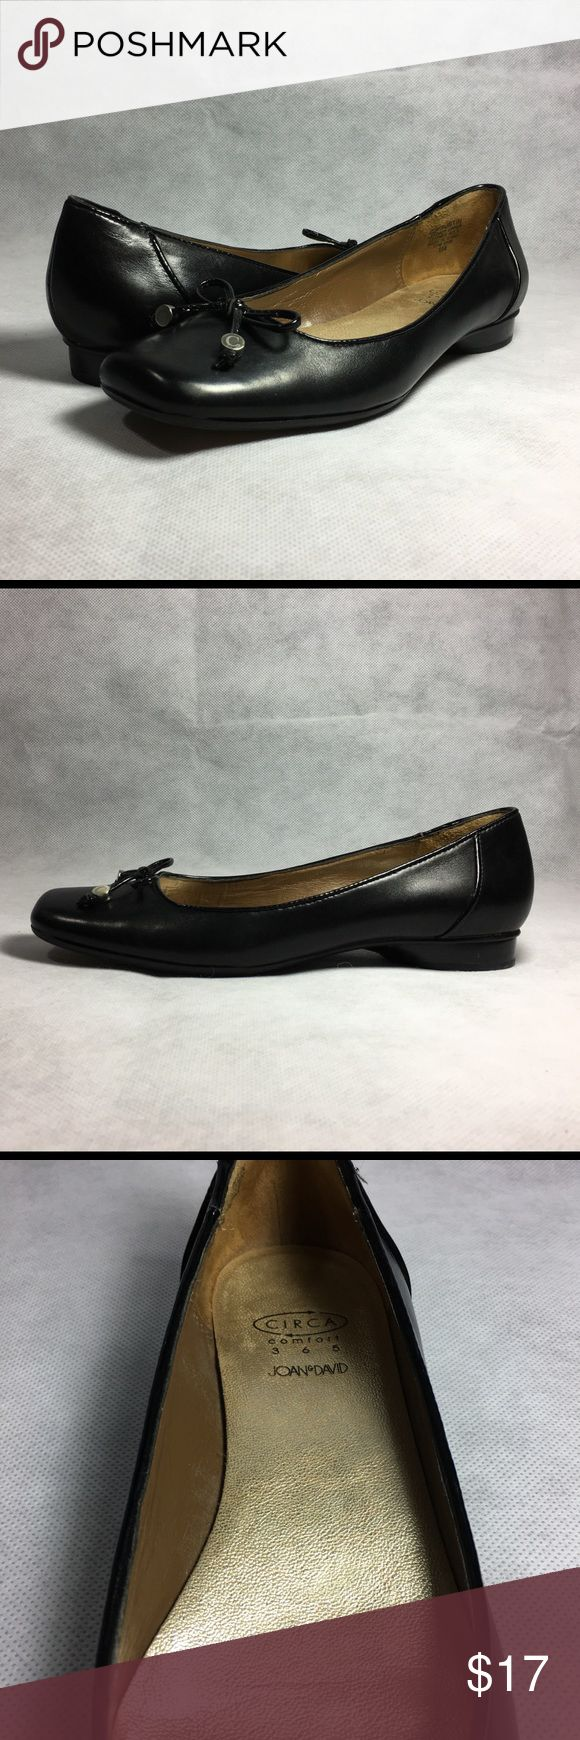 Circa Joan & David Womens Faustin Flat Shoe US 6 M Circa Joan & David Womens Faustin Flat Shoe   Size: US 6 (B, M) Color: Black   Condition: Some signs of wear with no defects. Great condition.